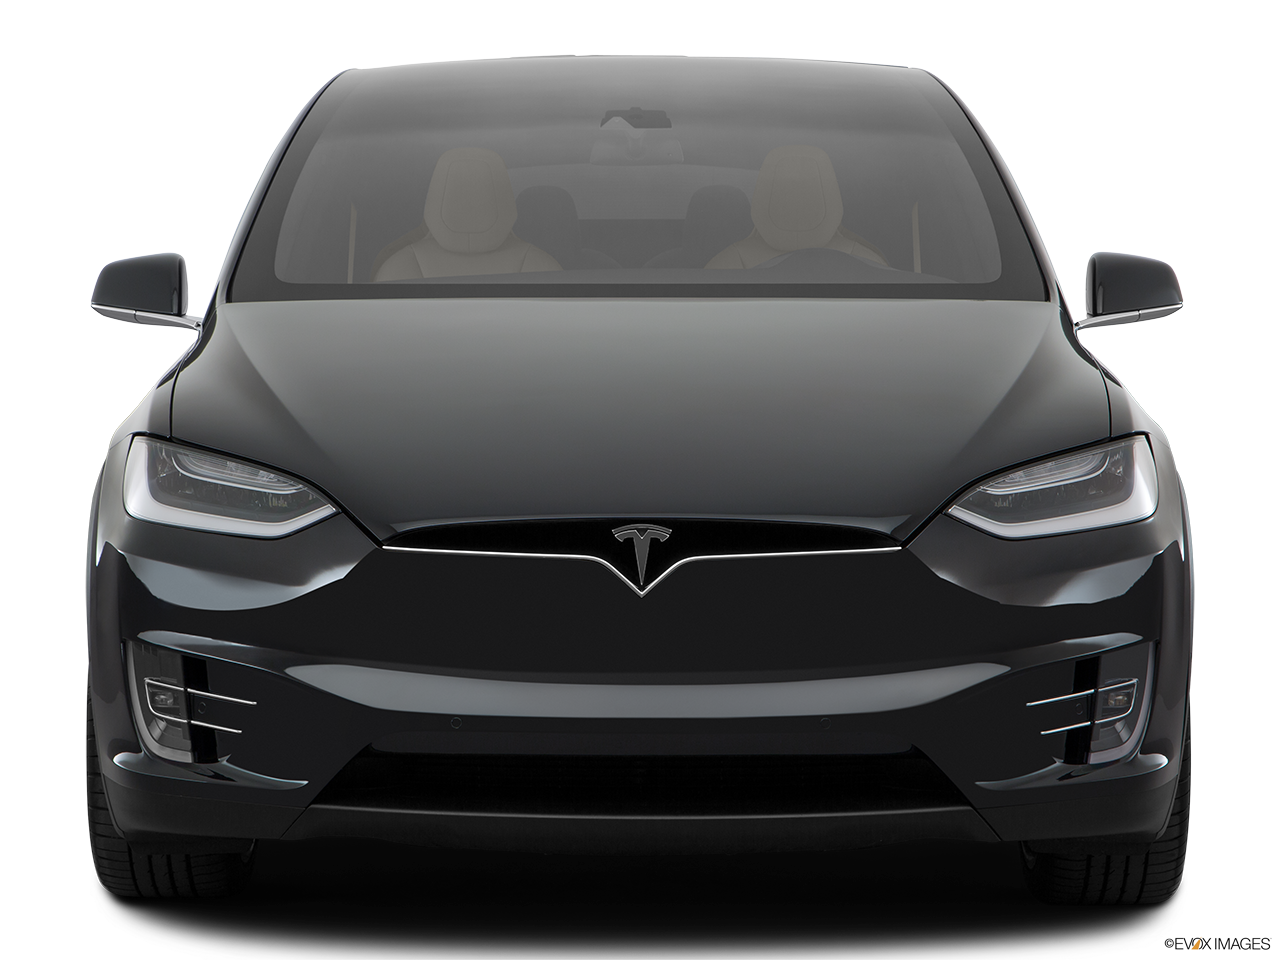 Front view of the Tesla Model X